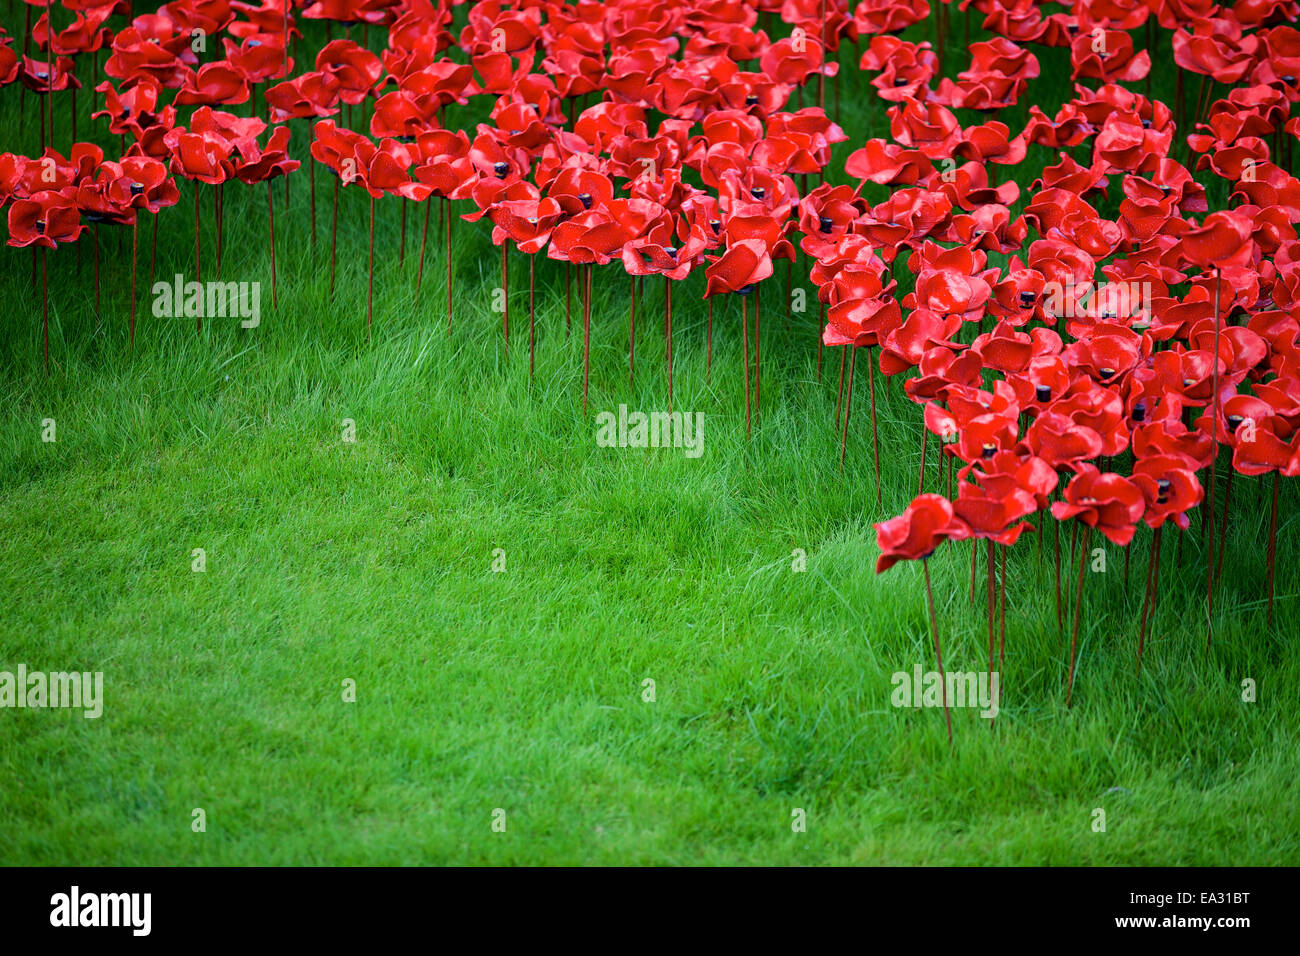 Blood Swept Lands and Seas of Red installation at The Tower of London, London, England, UK - Stock Image